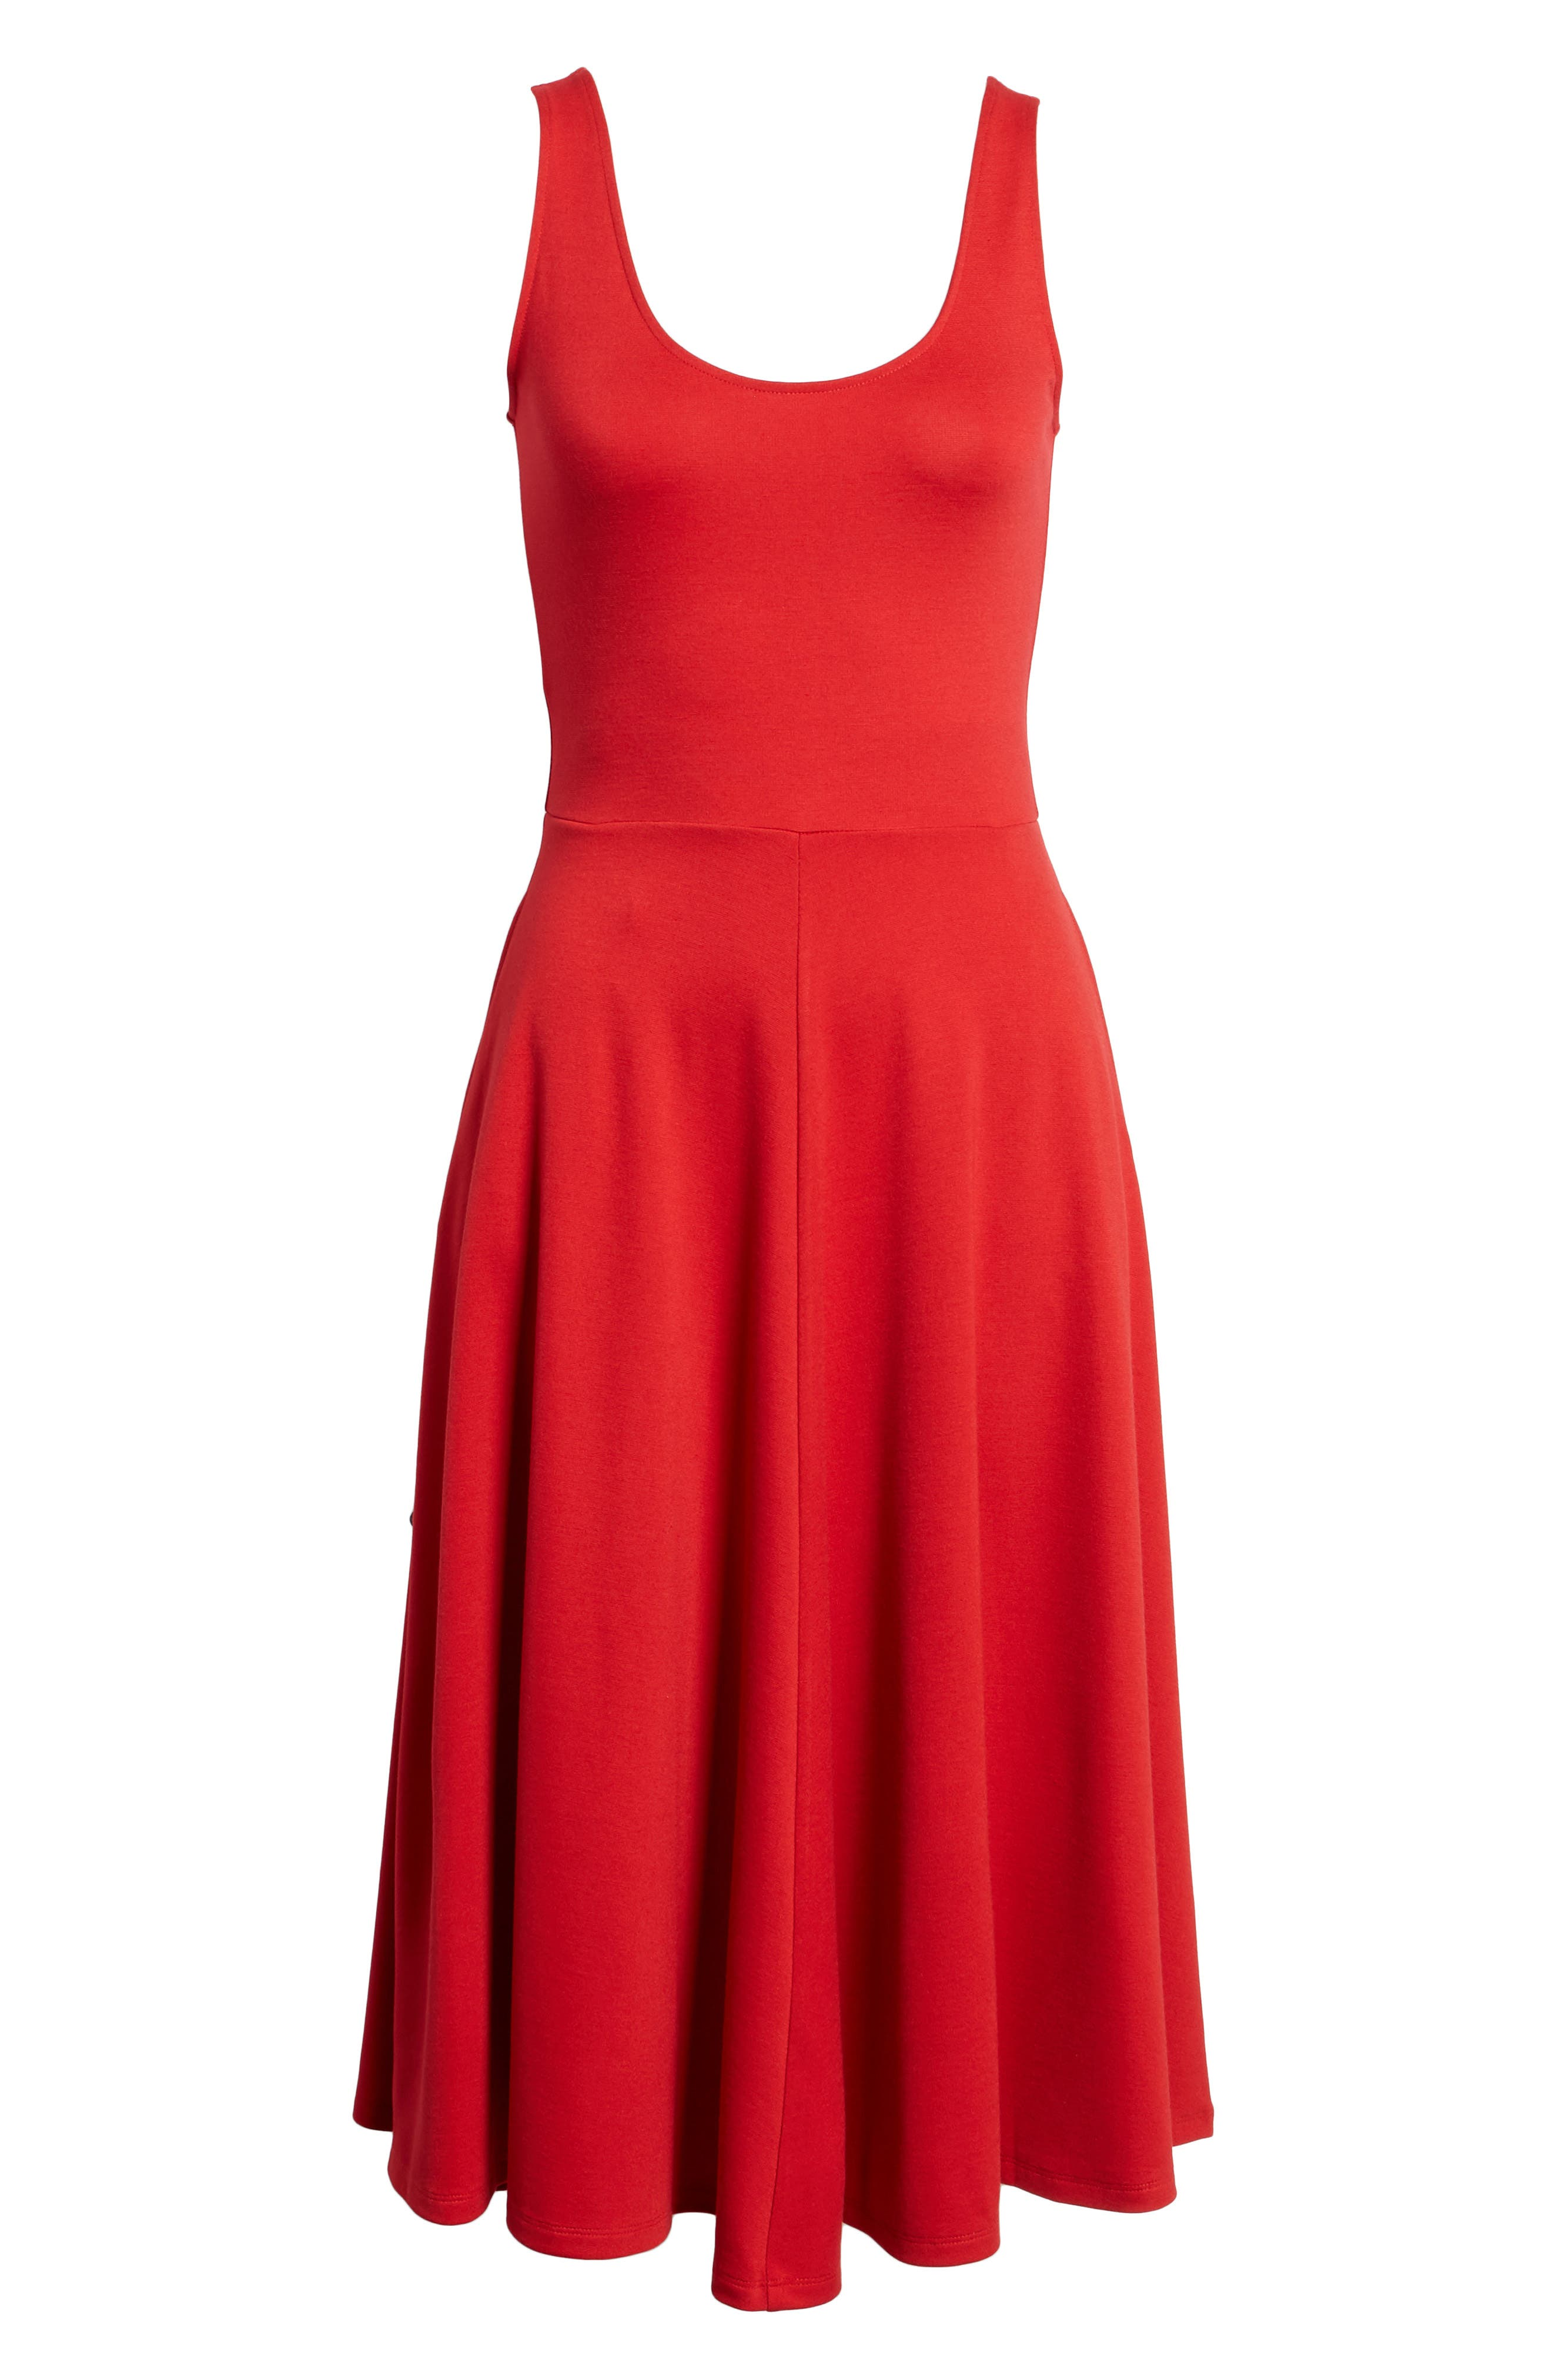 Stretch Knit Midi Dress,                             Alternate thumbnail 6, color,                             Red Couture